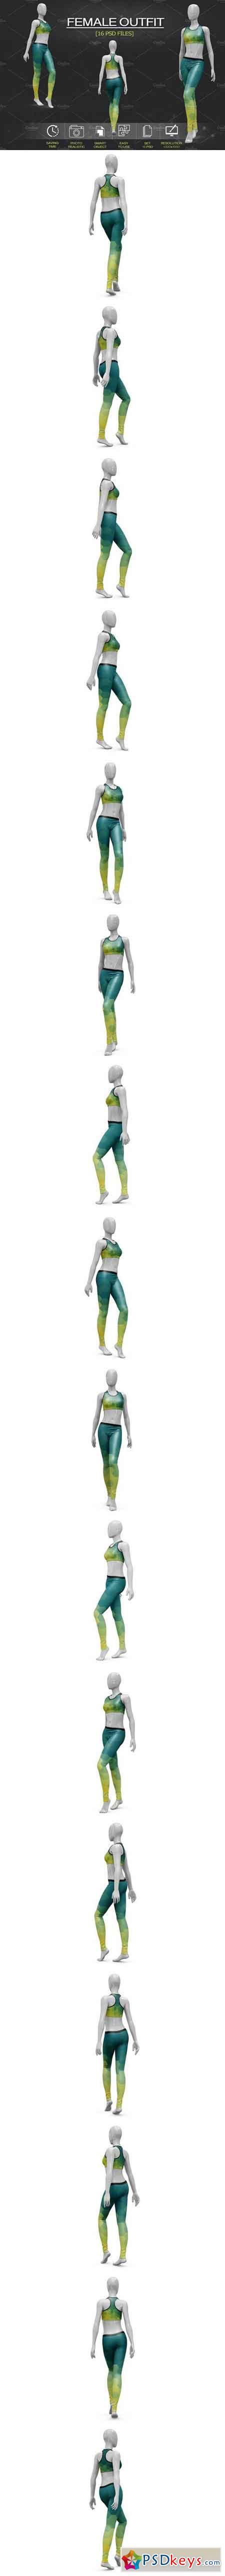 Female Sport Outfit Vol.1 Mockup 2108151